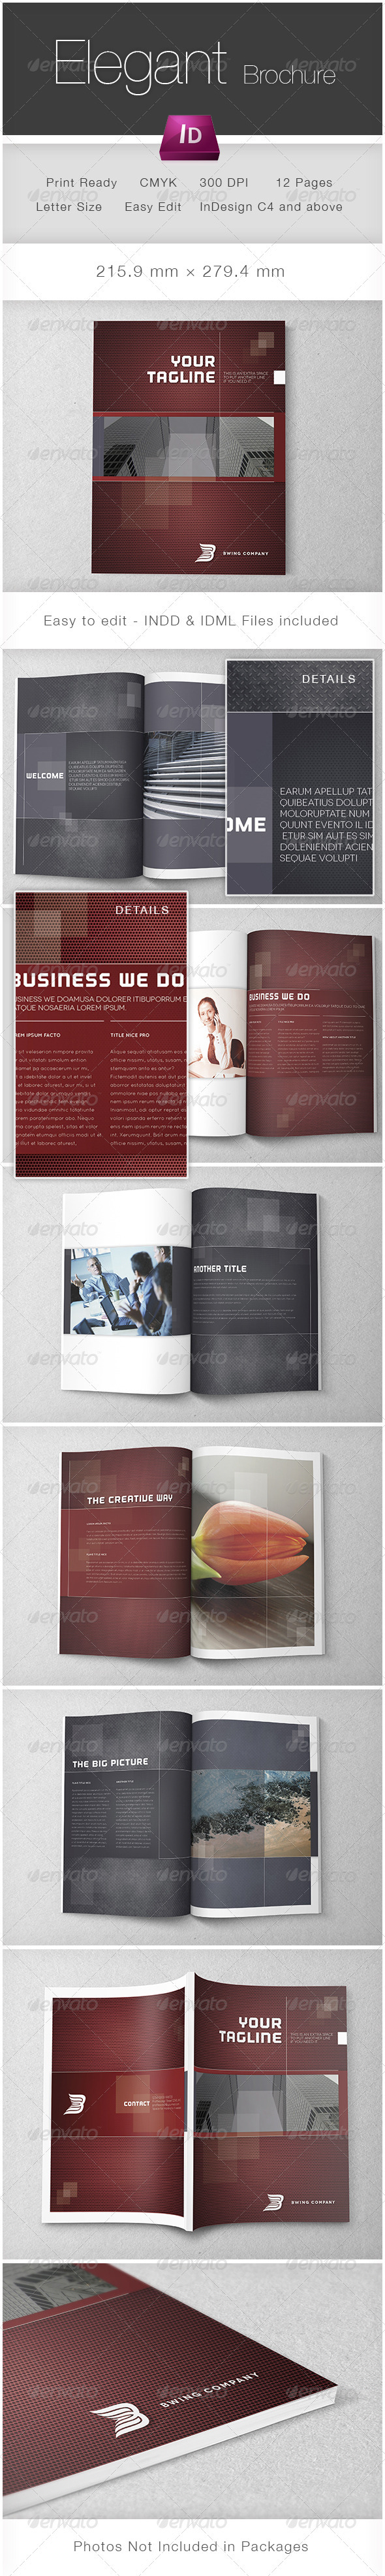 Elegant Brochure Template - Corporate Brochures